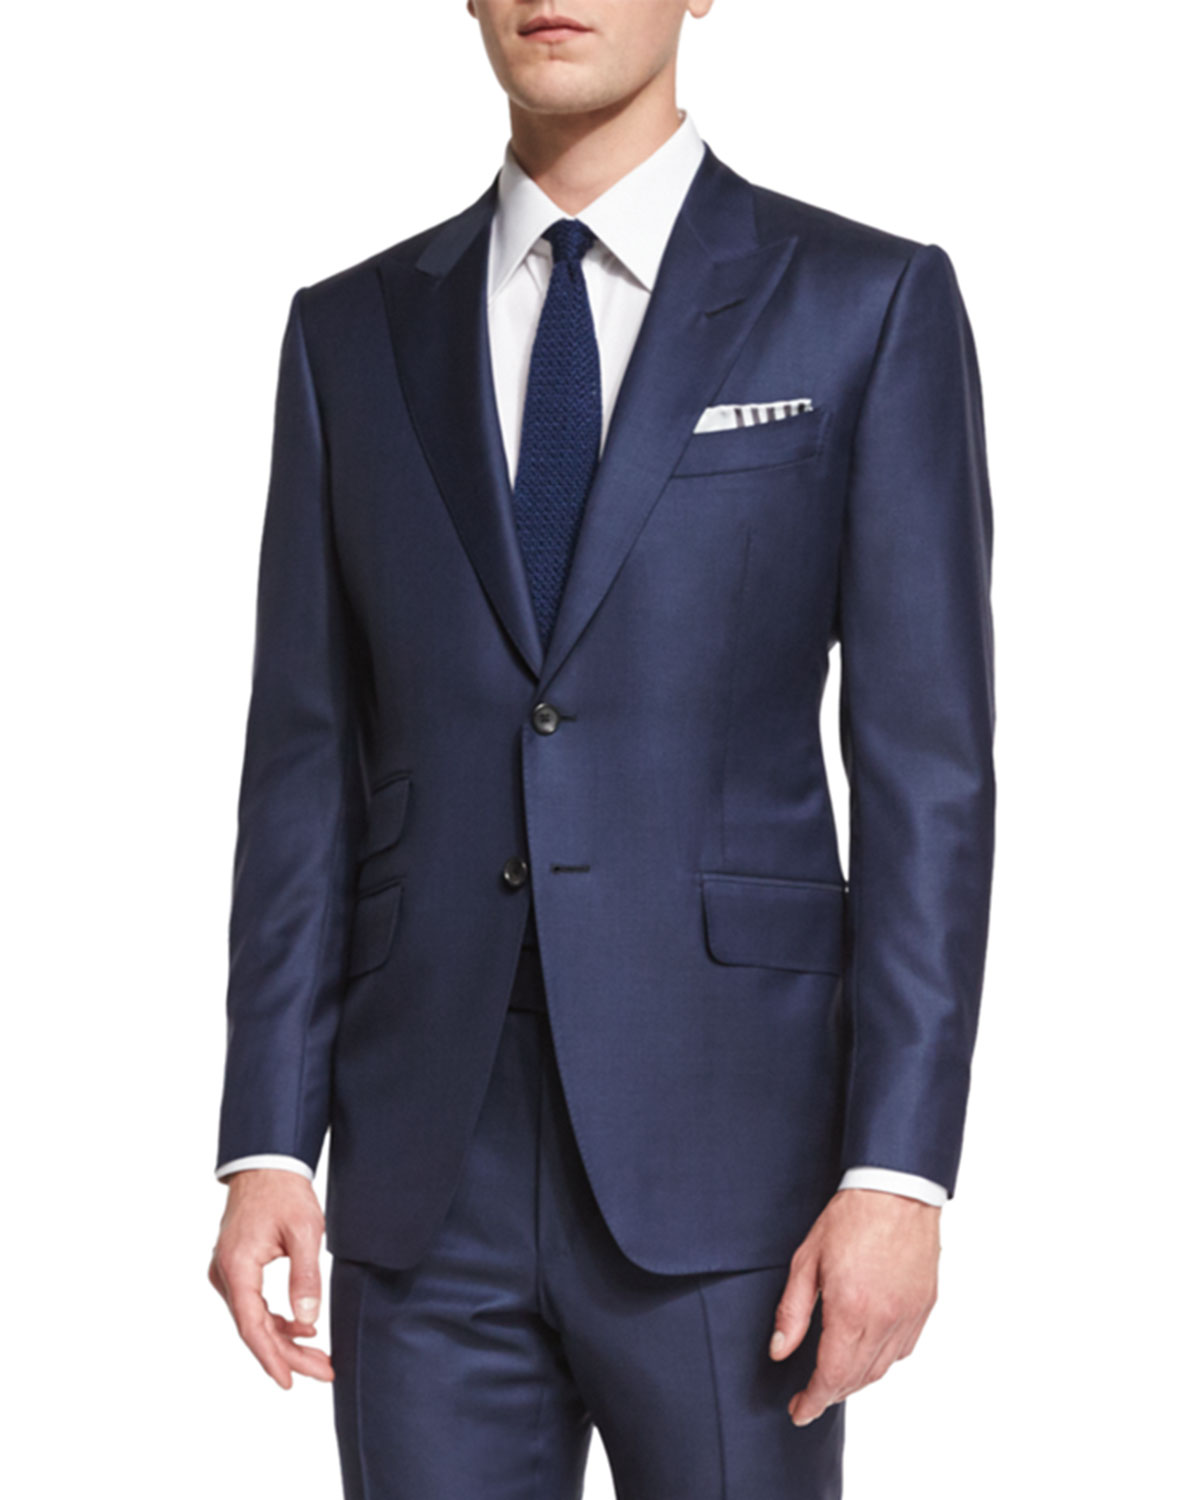 O'Connor Base Sharkskin Two-Piece Suit